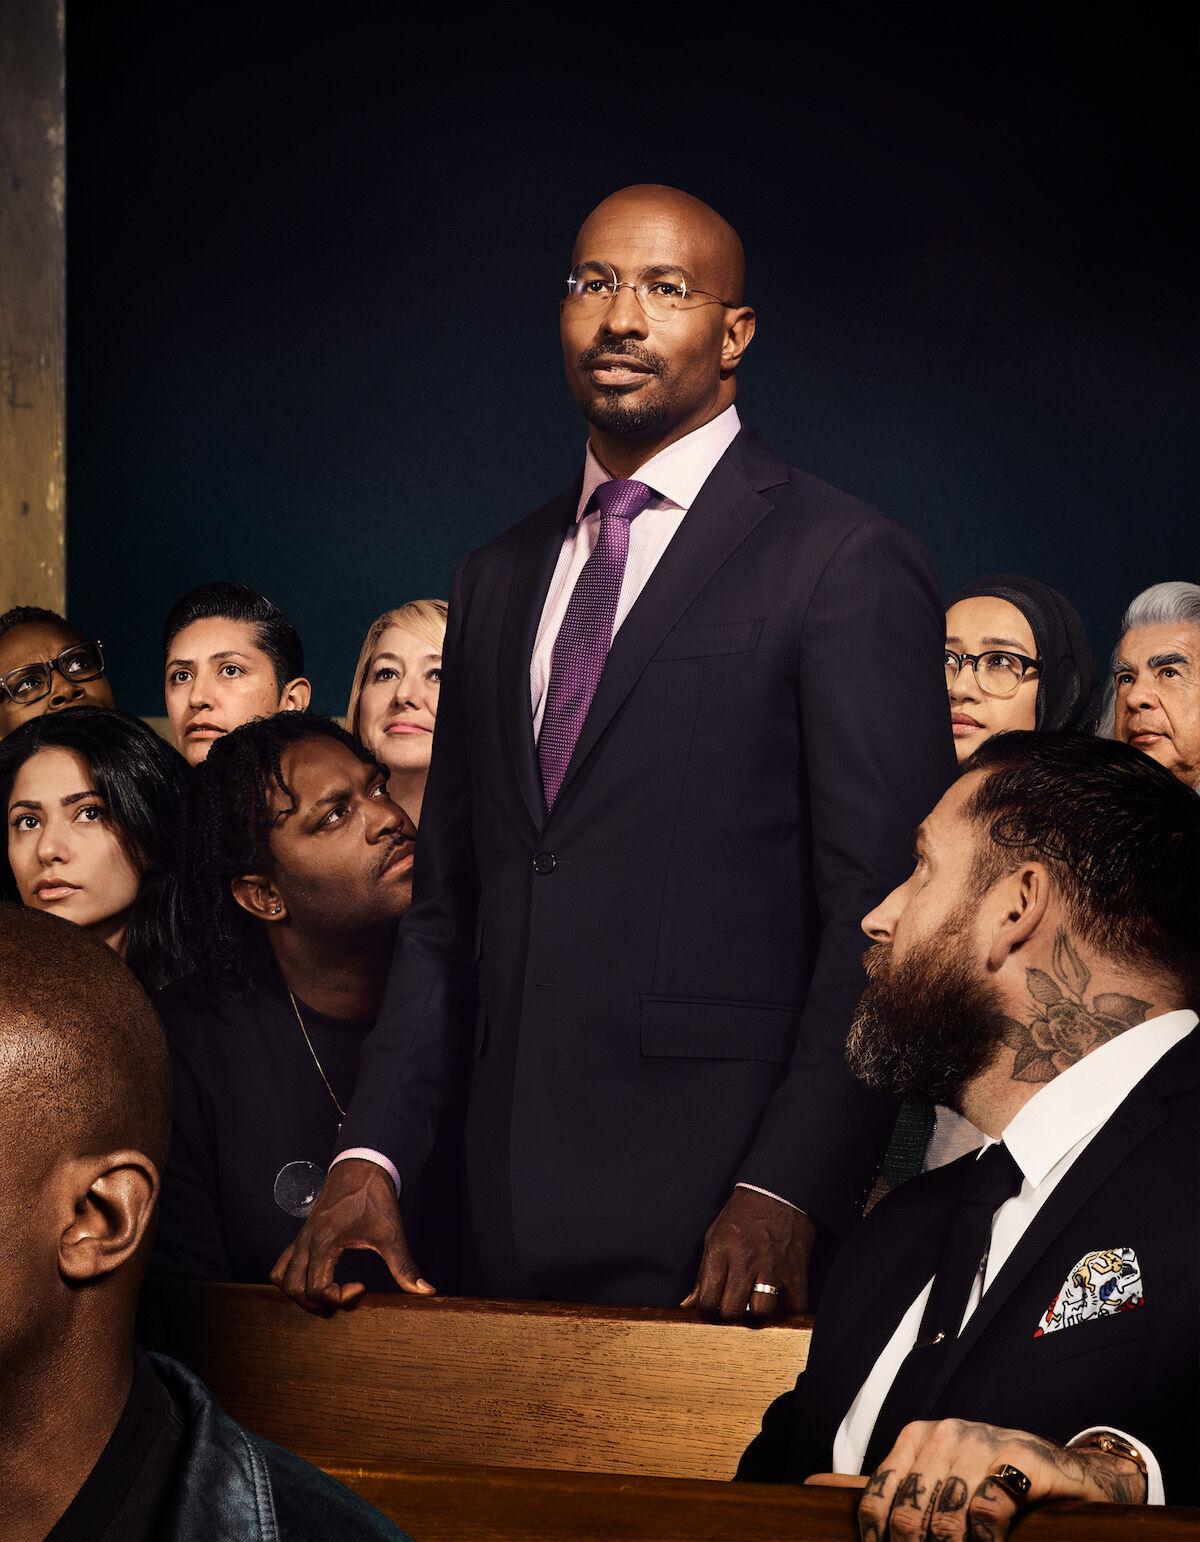 Interpretation of Norman Rockwell's Freedom of Speech by For Freedoms, featuring news commentator and author Van Jones (standing). Courtesy For Freedoms.